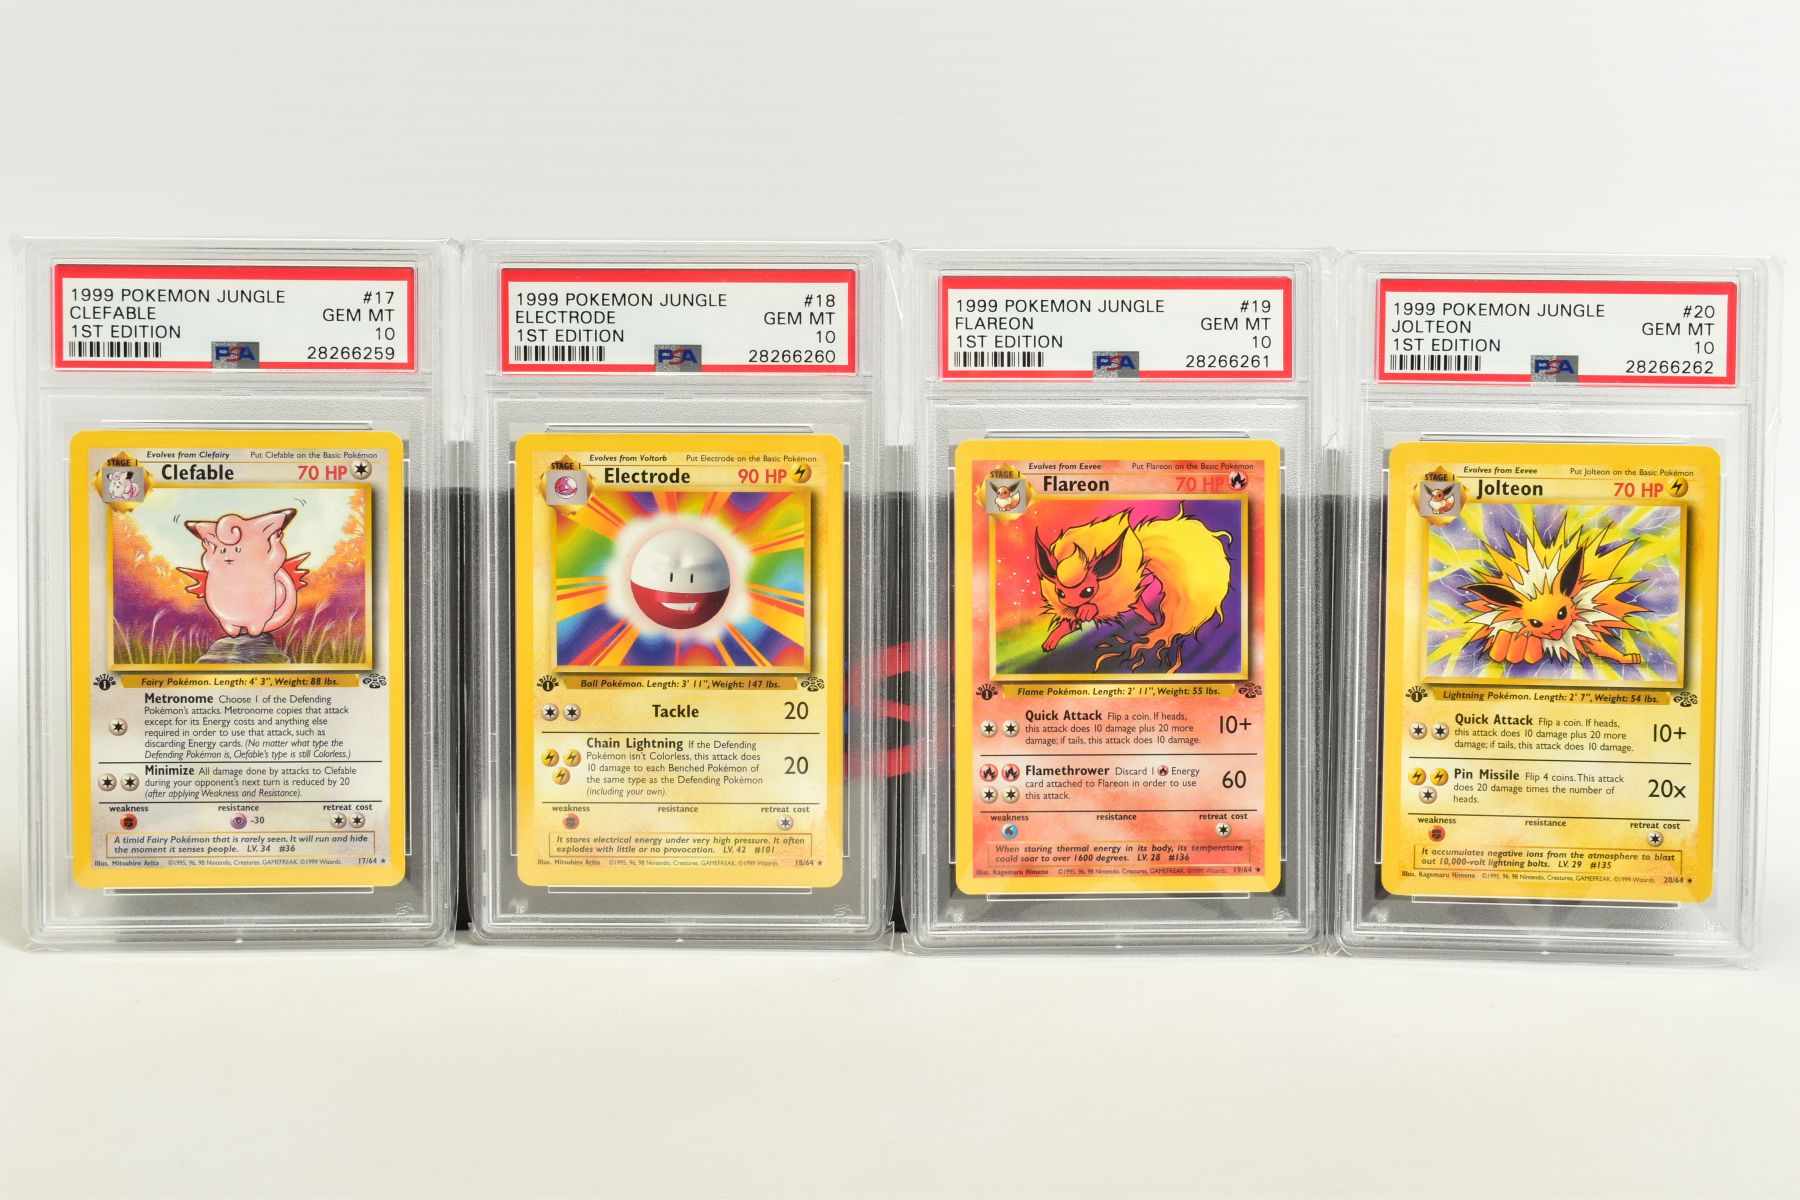 A QUANTITY OF PSA GRADED POKEMON 1ST EDITION JUNGLE SET CARDS, all are graded GEM MINT 10 and are - Image 2 of 13